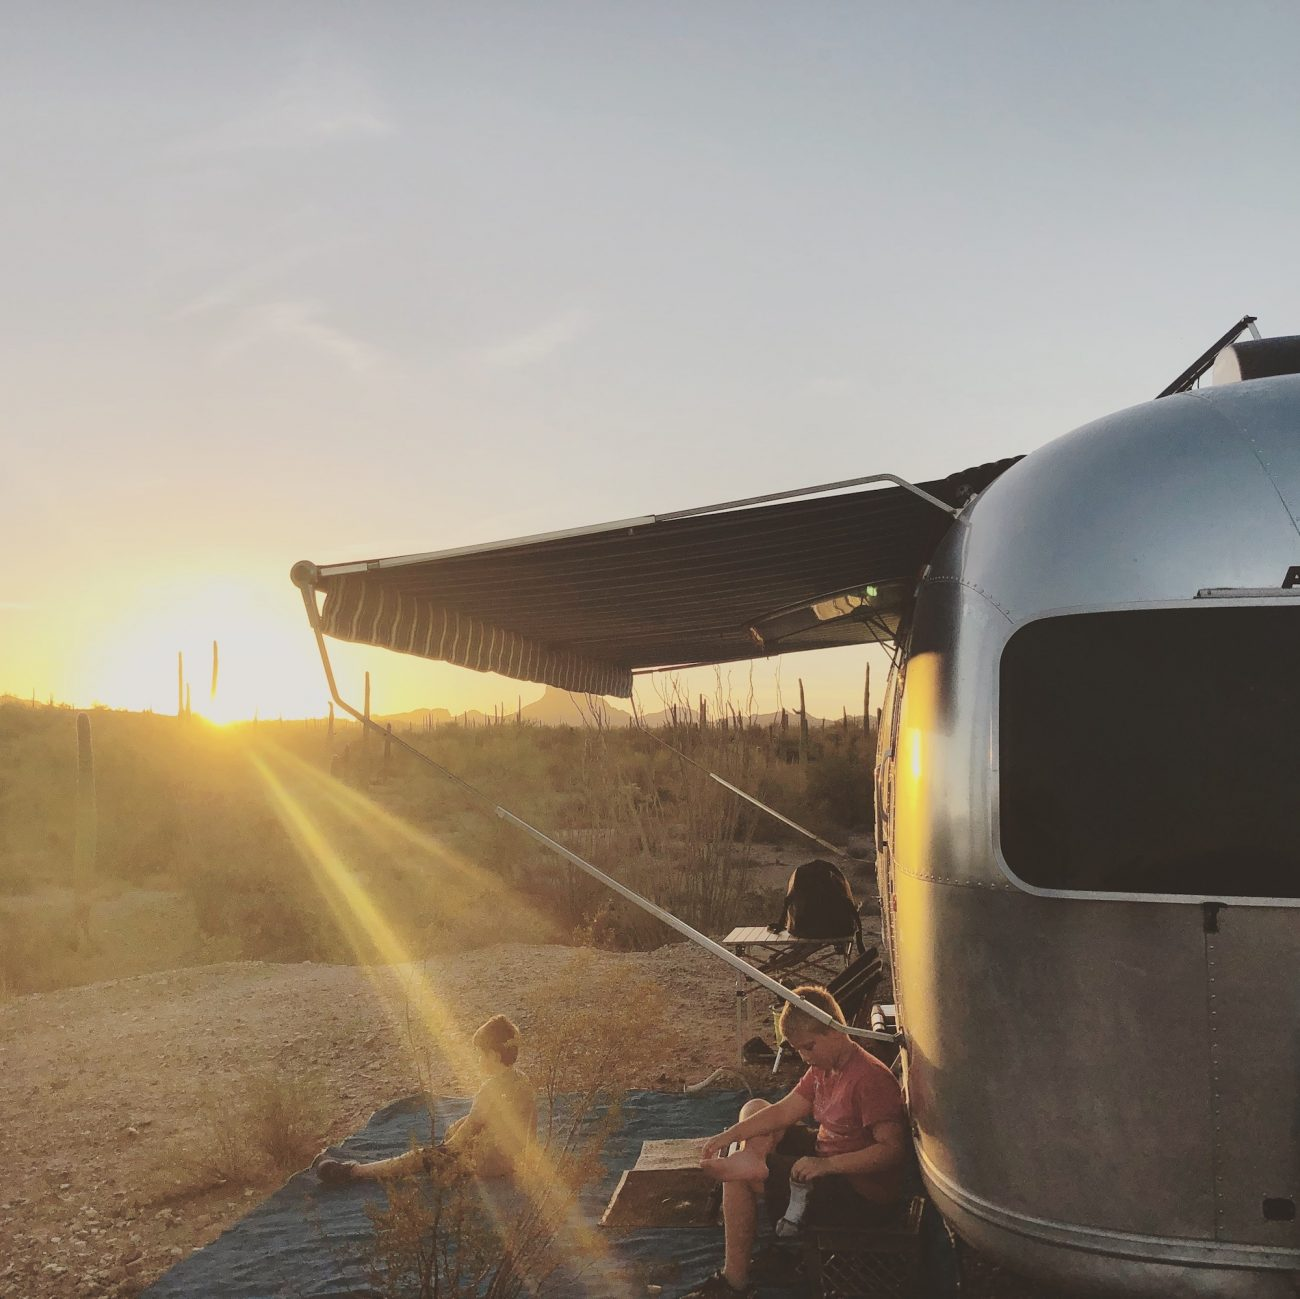 Airstream at sunset in desert with awning out.